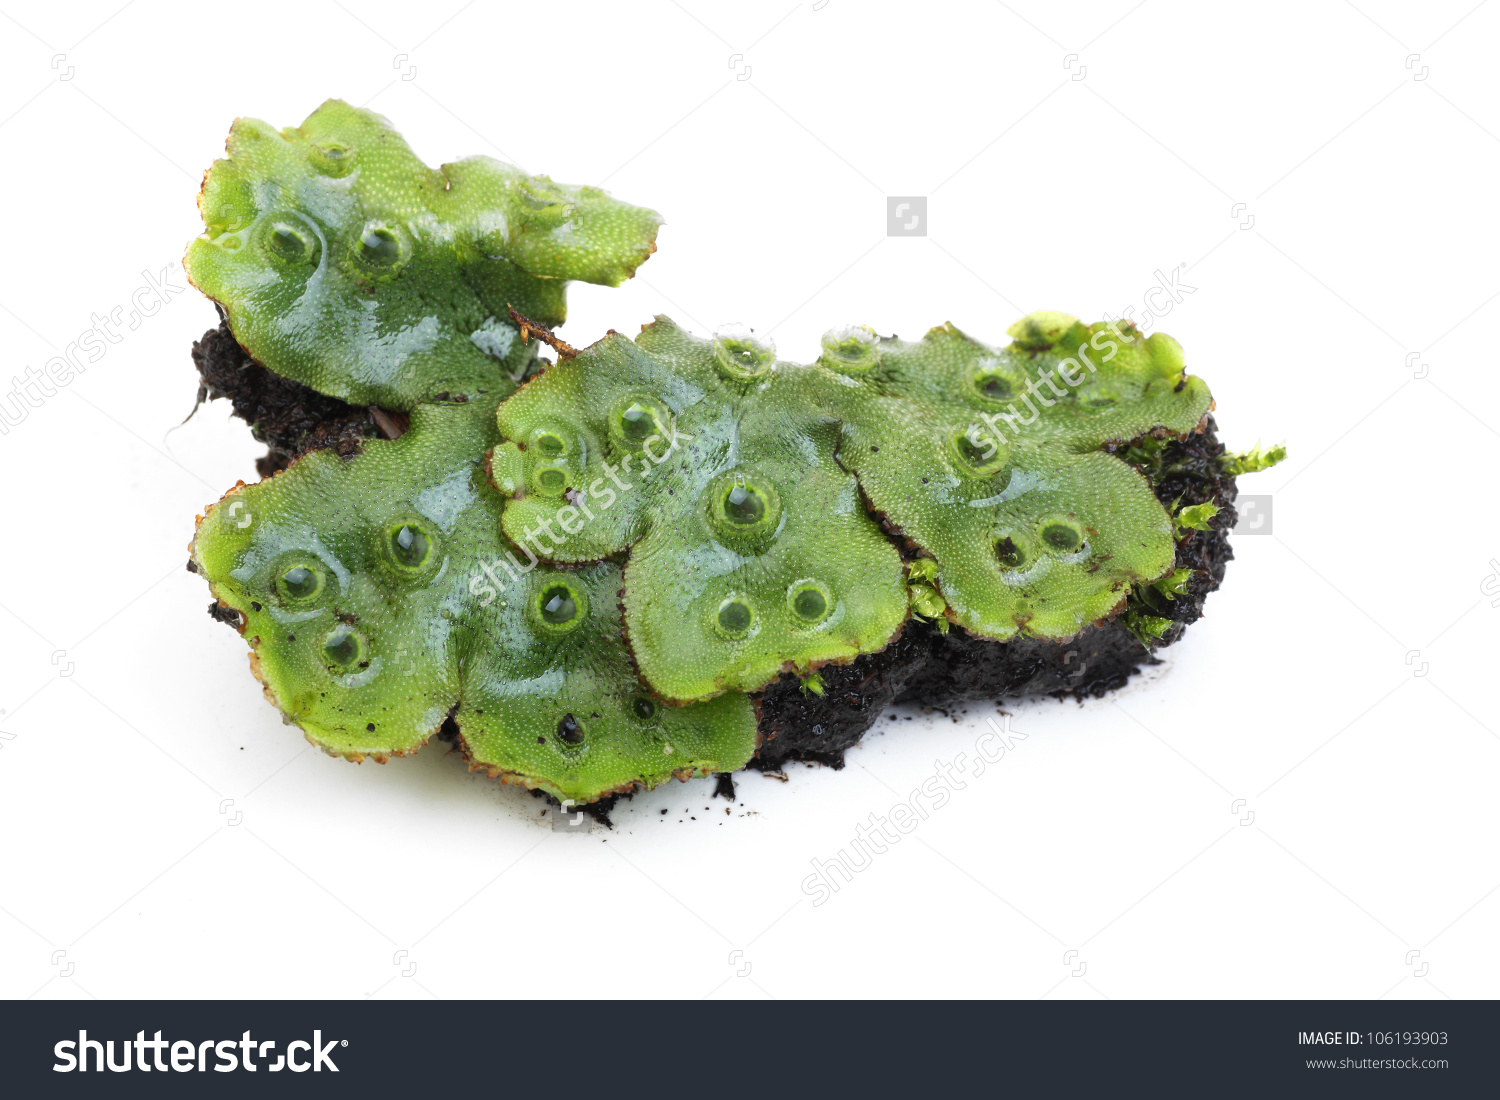 Liverwort Moss On White Stock Photo 106193903.